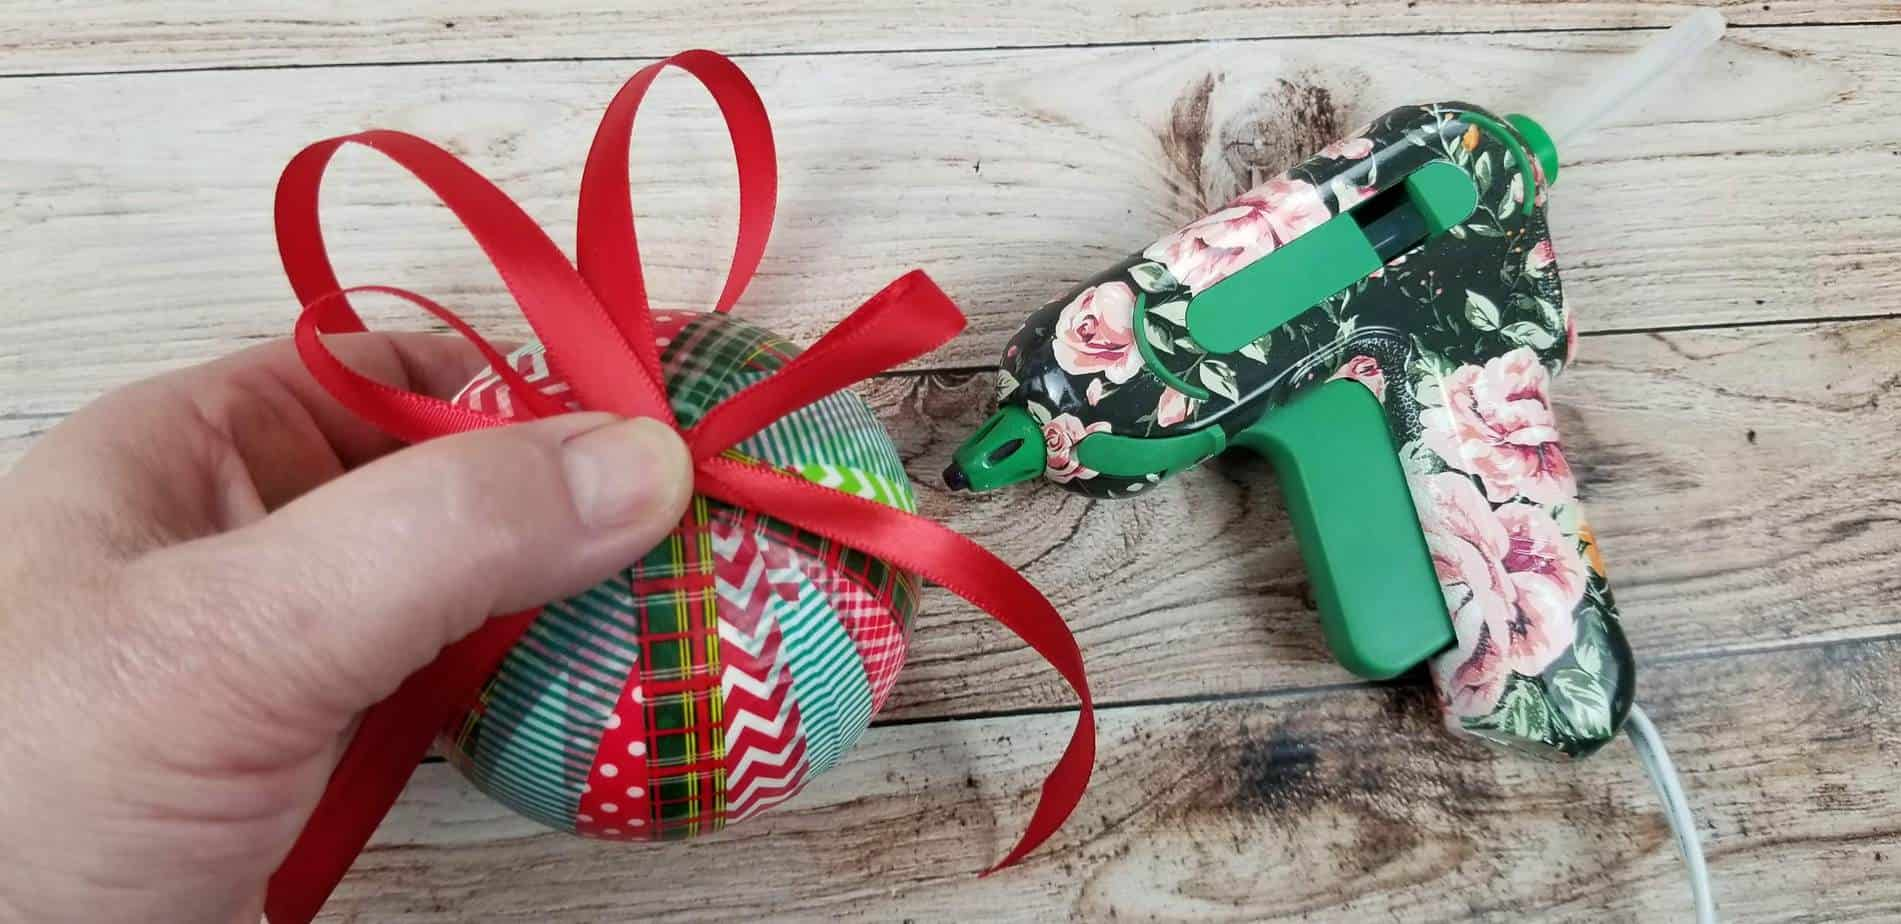 a hand holding red ribbon at the top of an ornament wrapped in washi tape on a wooden table next to a glue gun